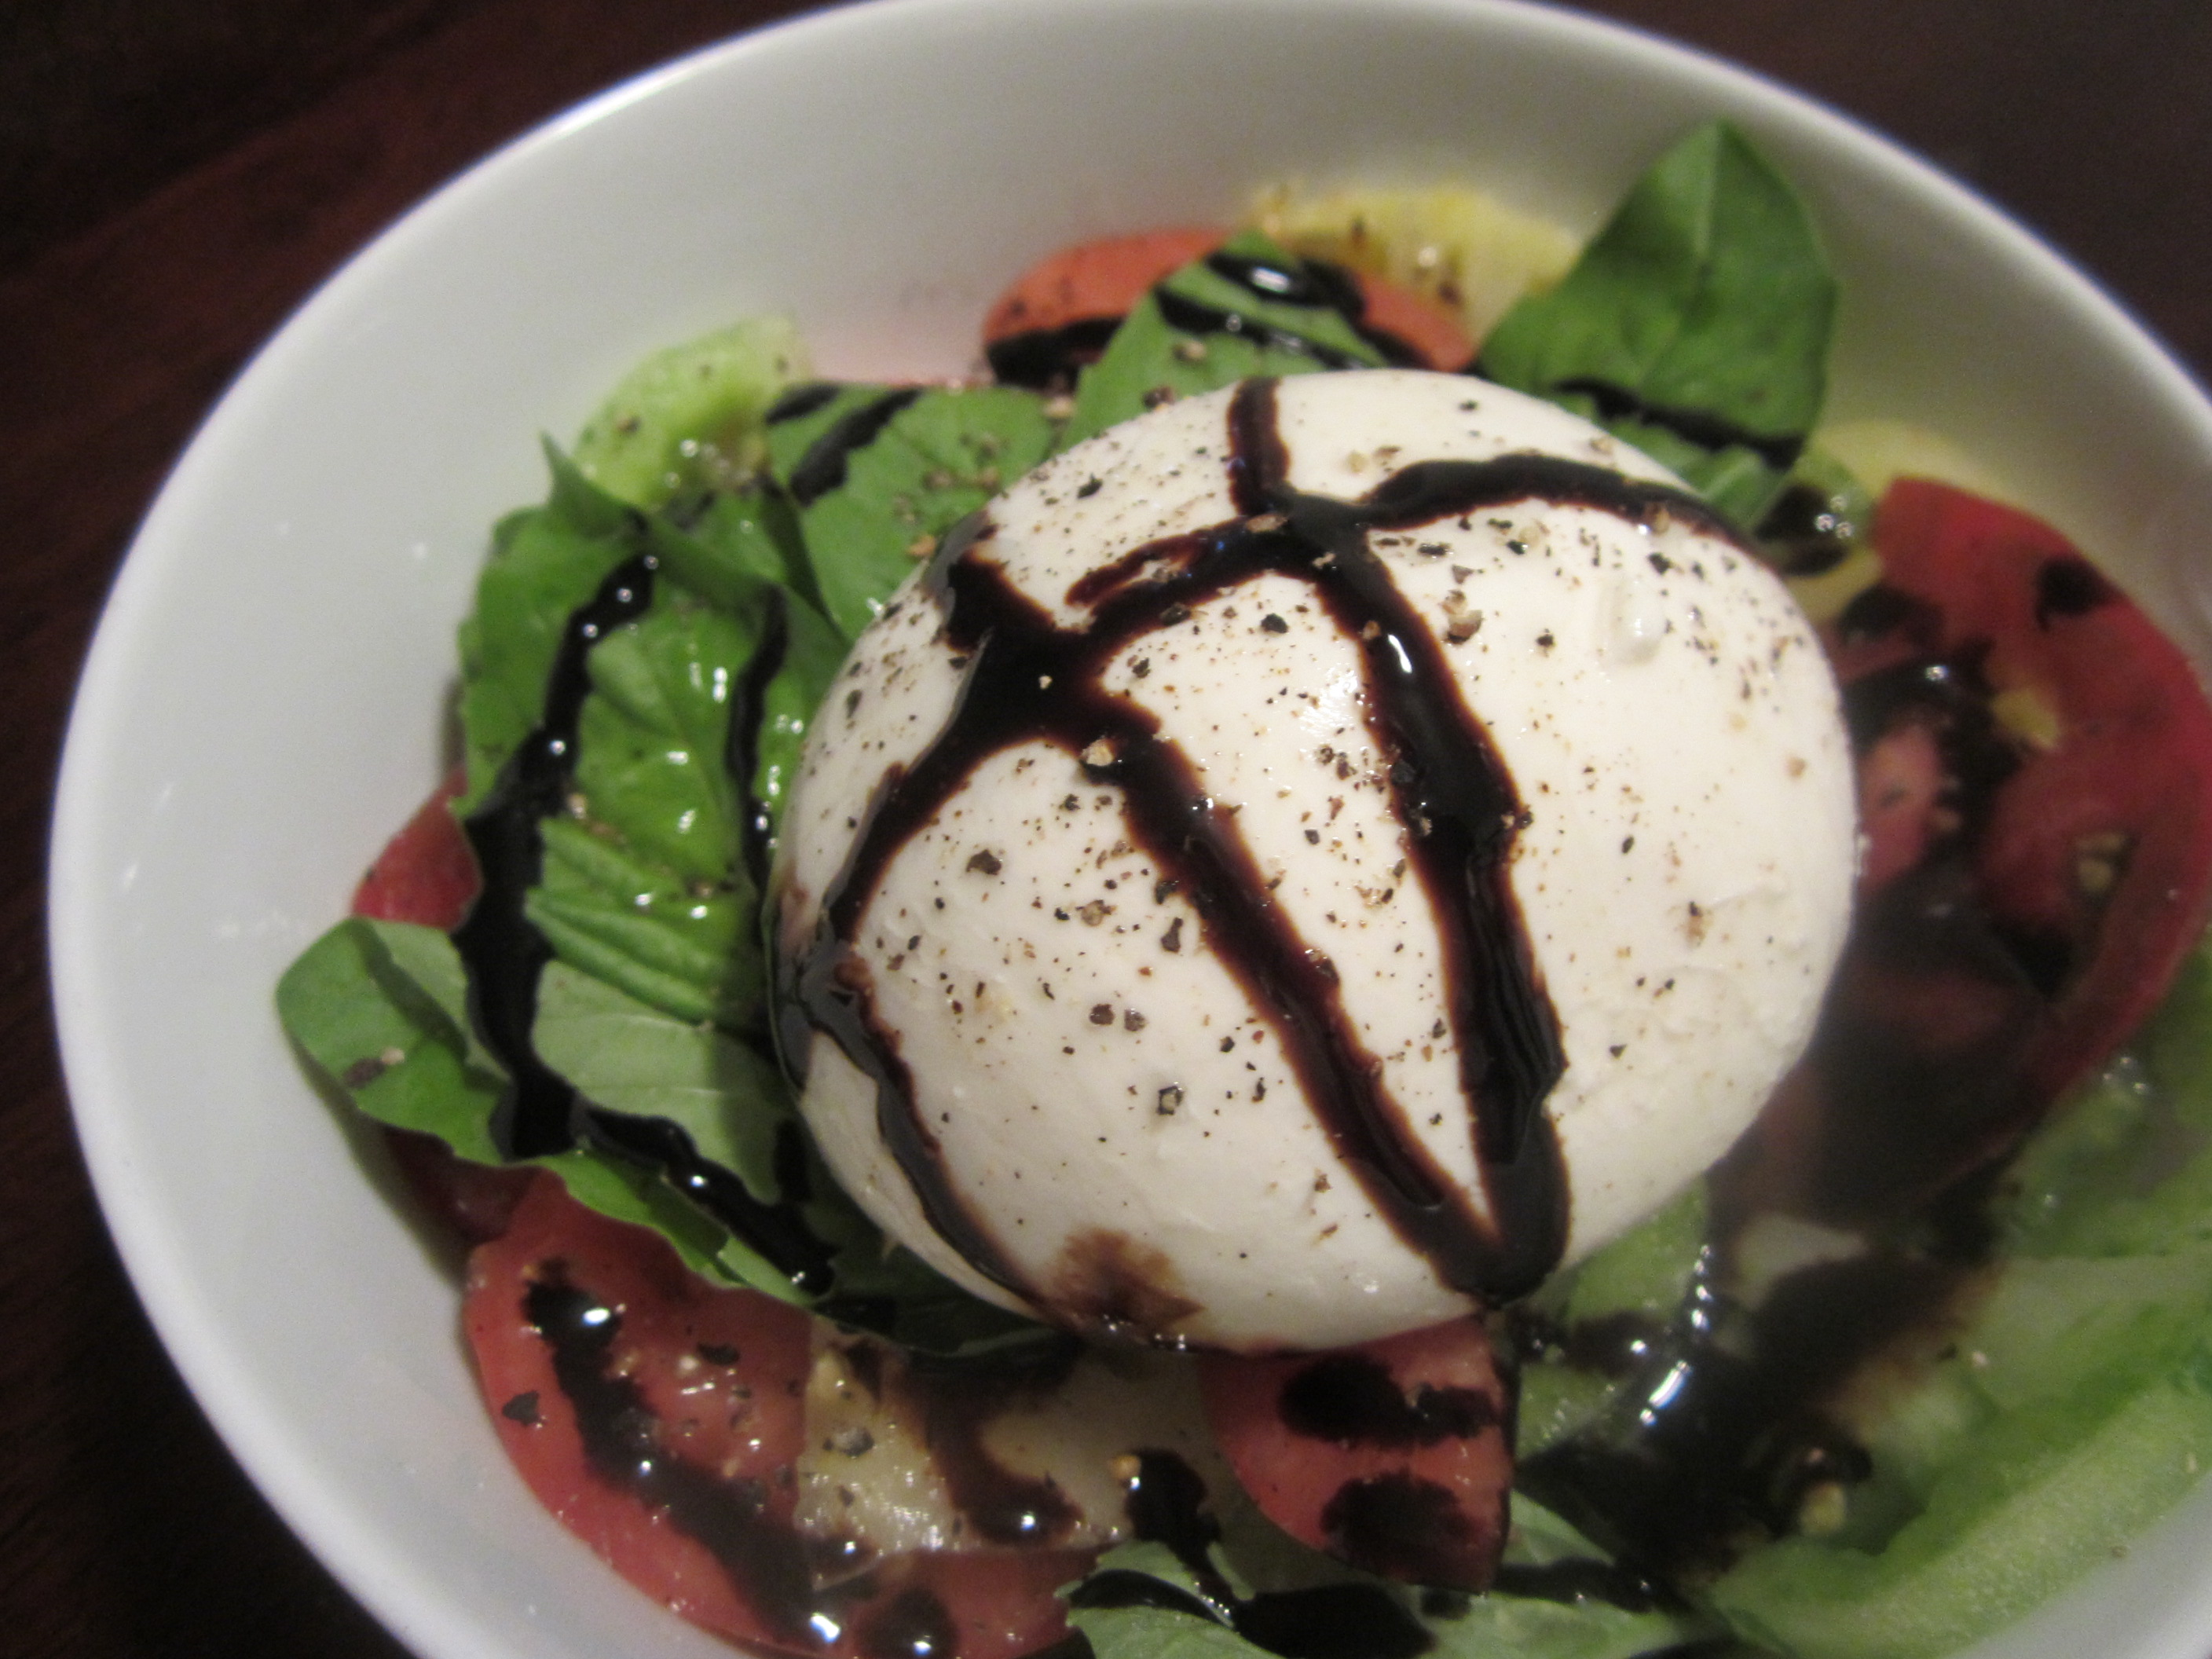 Week 45: Heirloom Tomato & Burrata Salad | bake, broil & blog